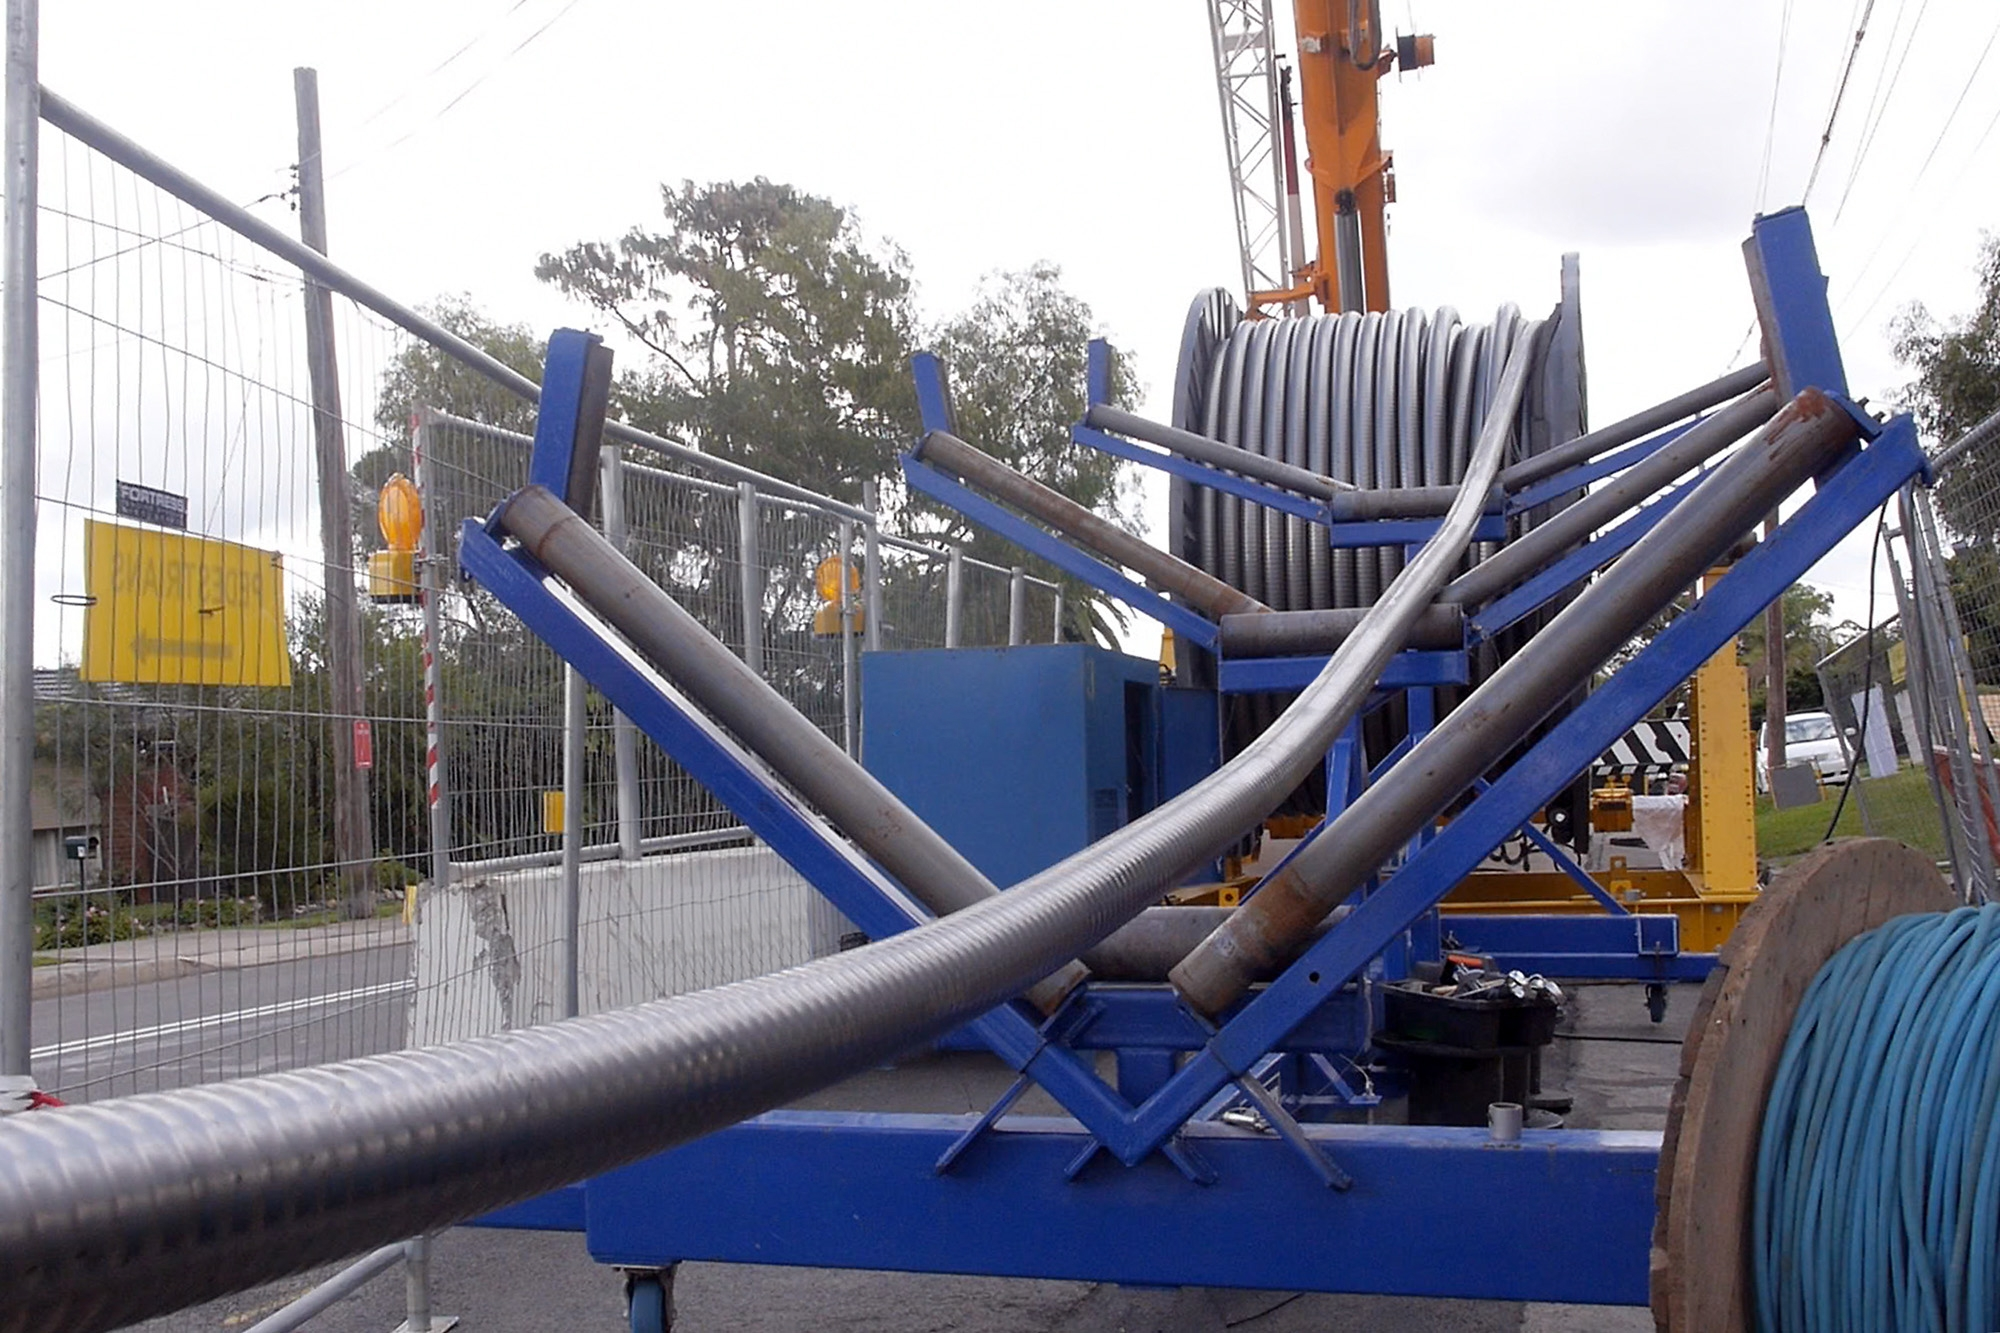 High Voltage Power Cable : Prysmian wins high voltage cable contracts worth